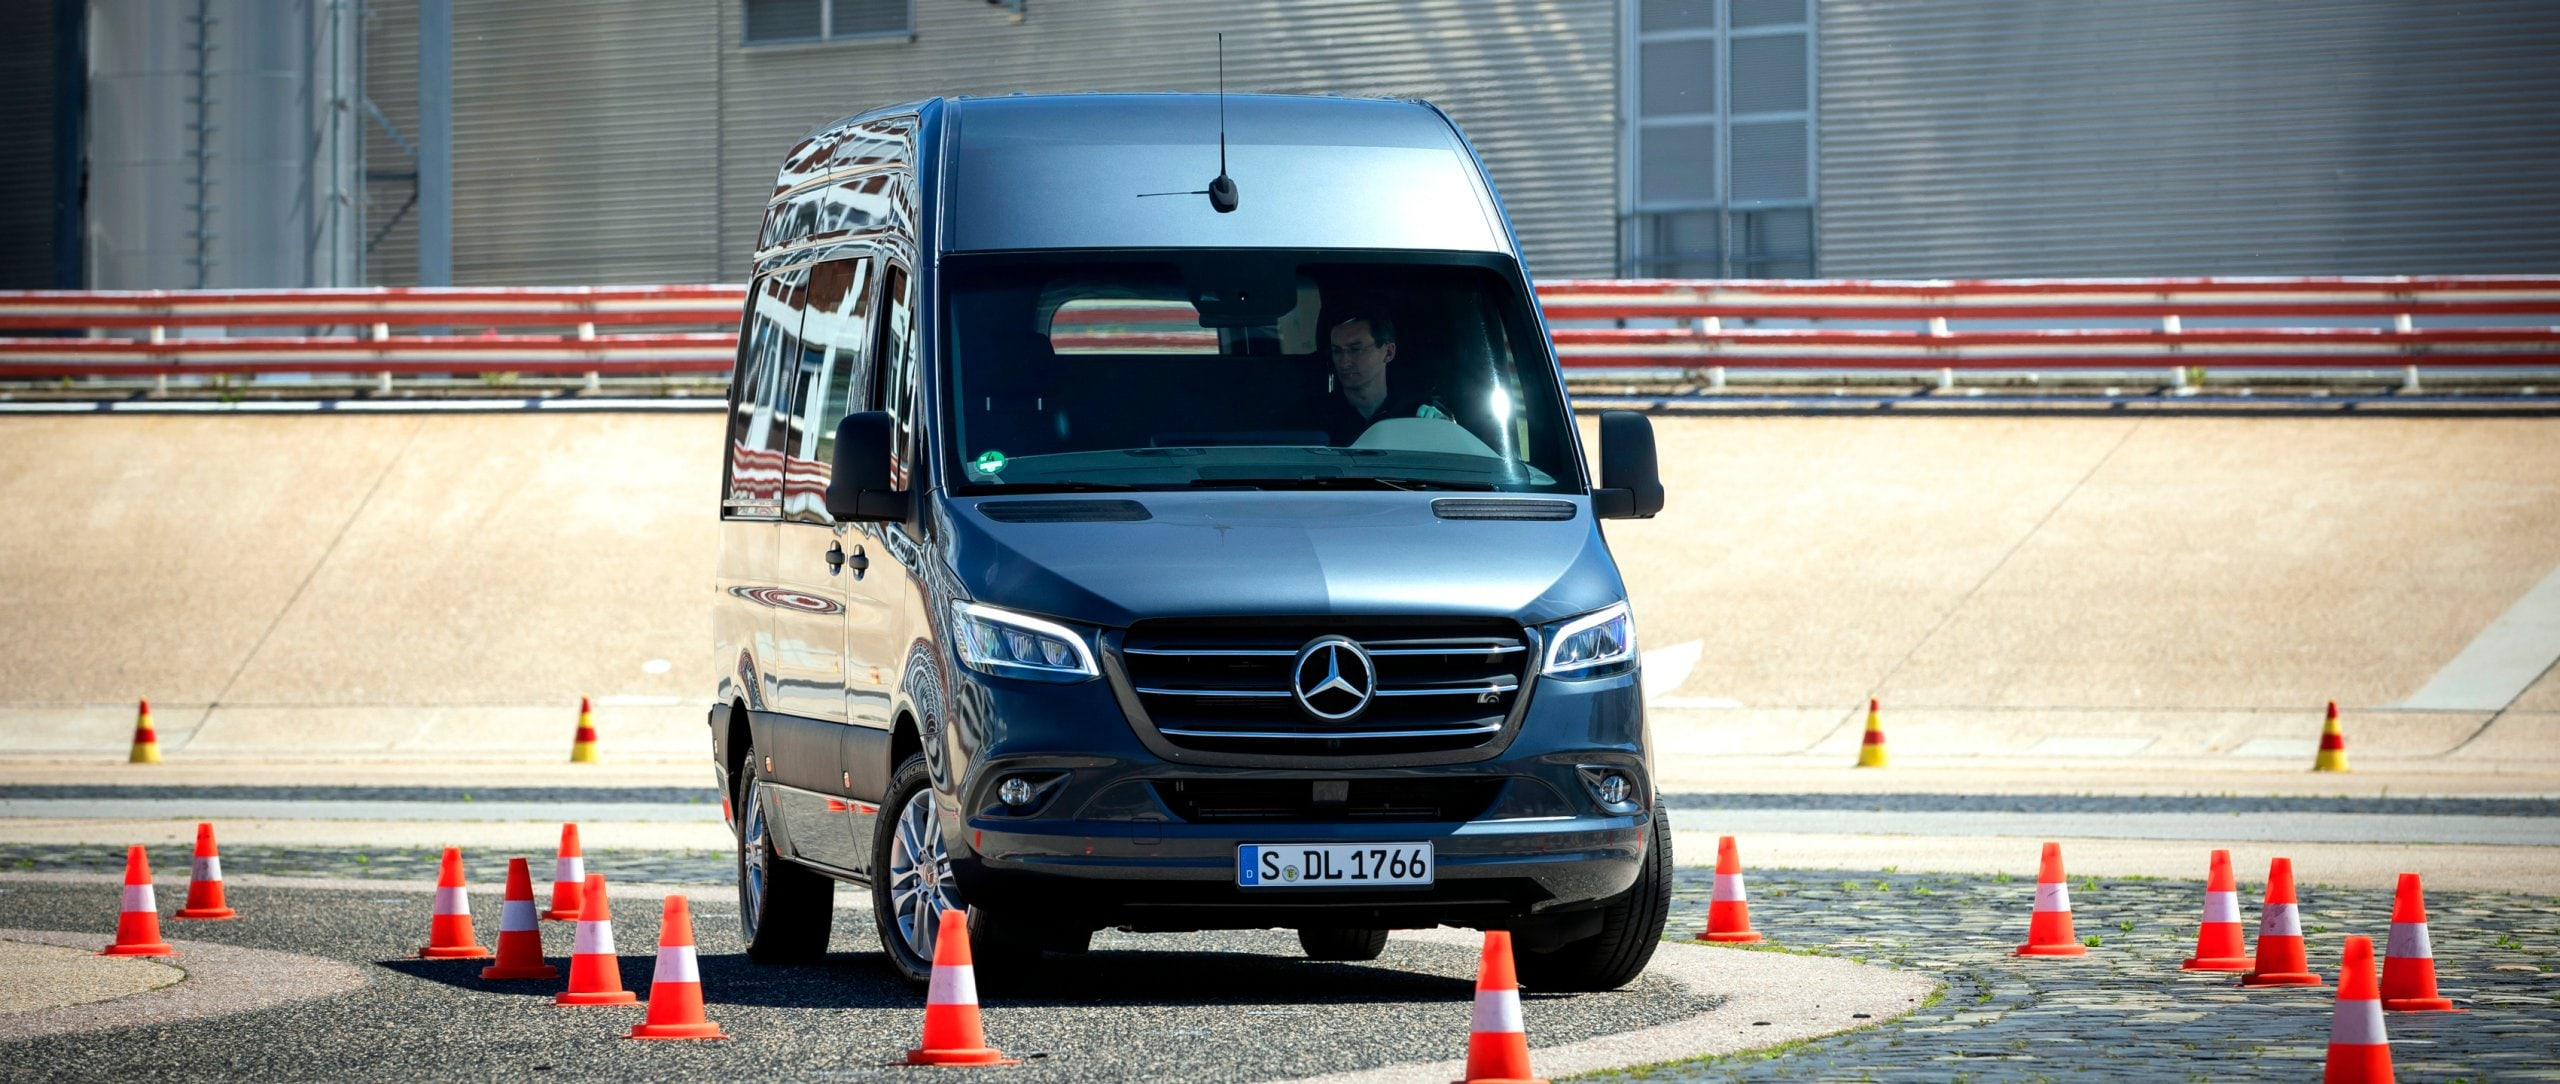 Der Mercedes-Benz Sprinter (2019) Safety Workshop in Stuttgart.